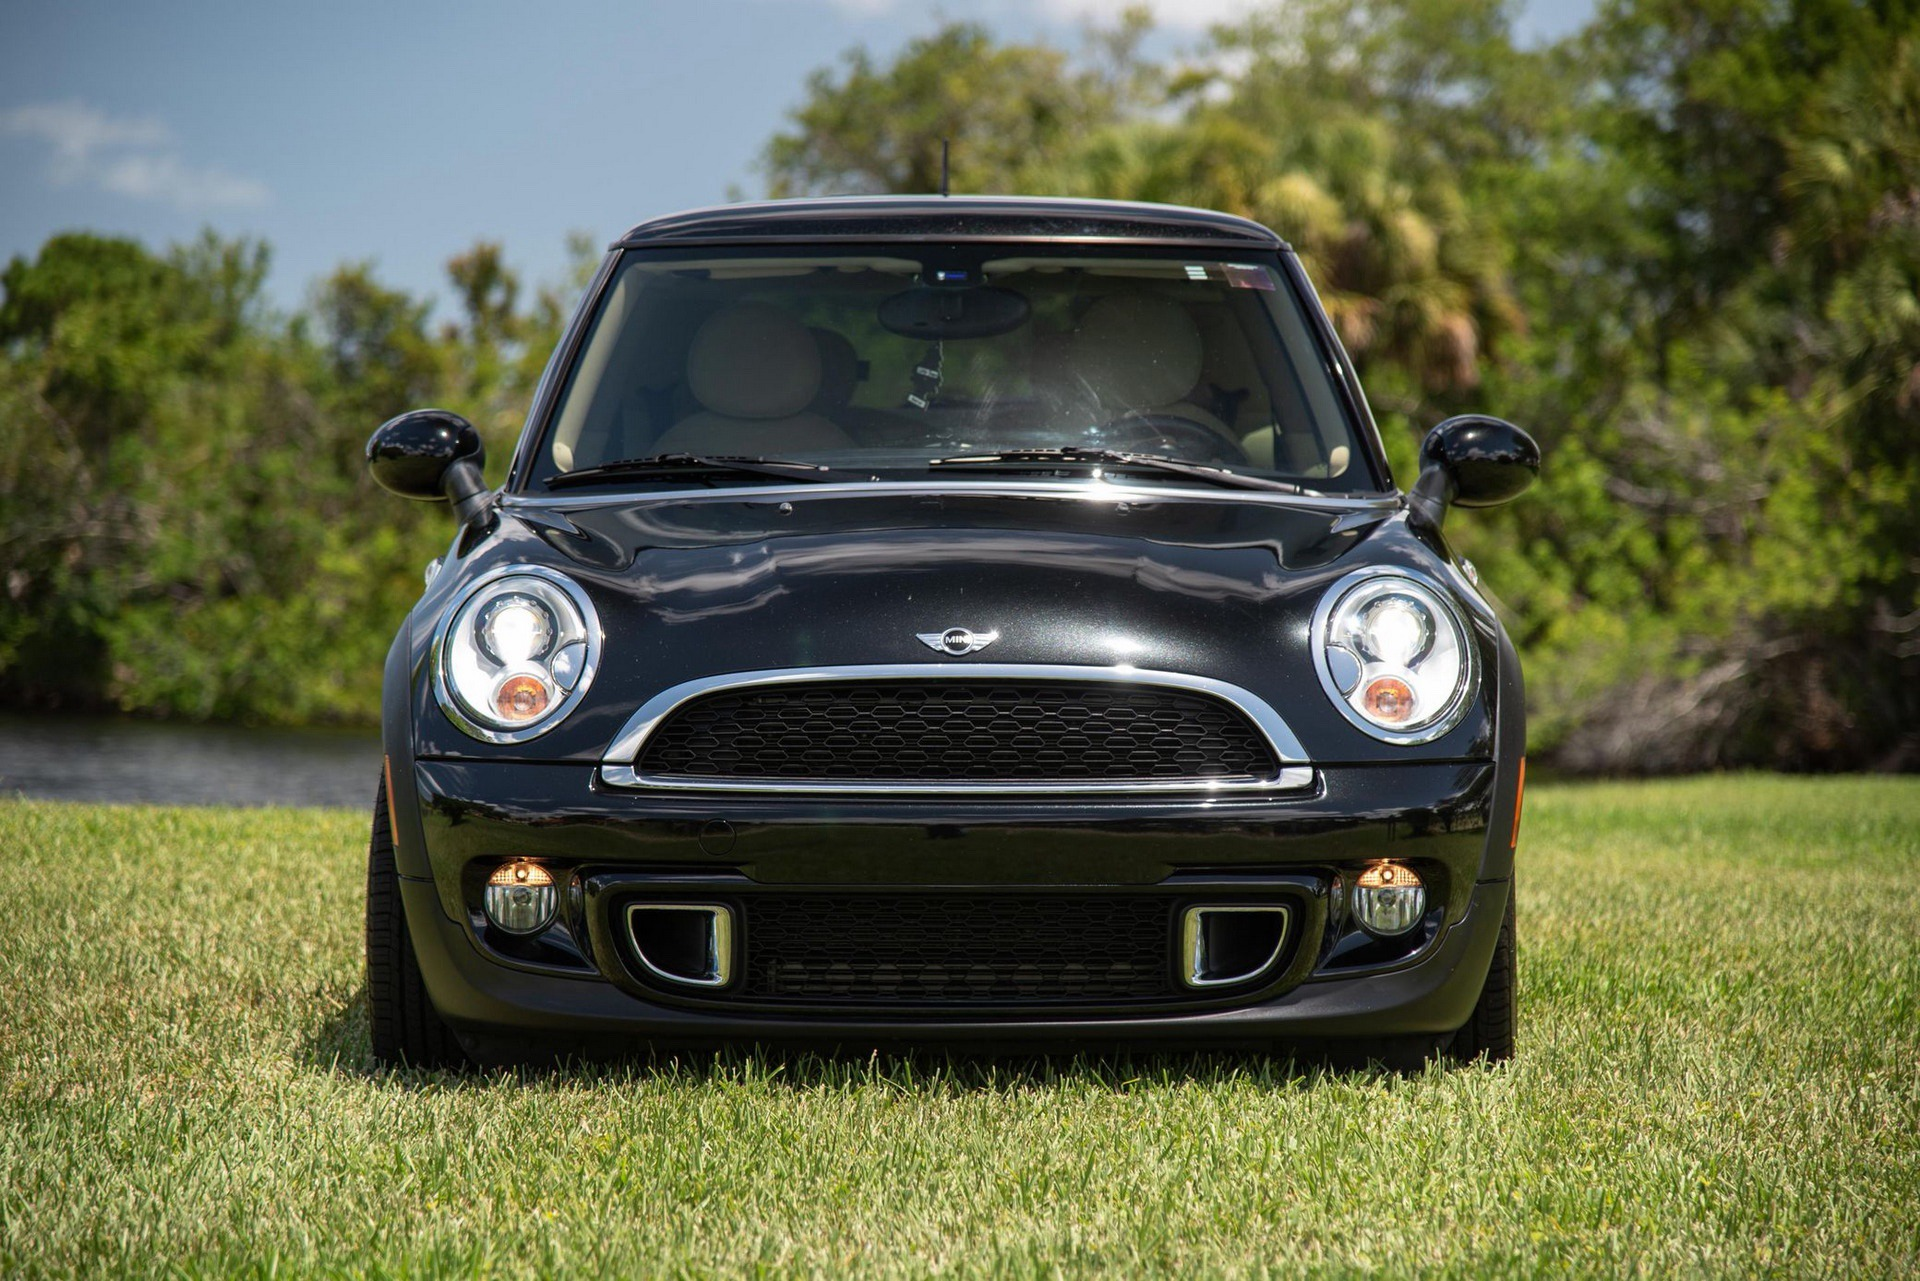 Mini_Cooper_S_Inspired_by_Goodwood-0013